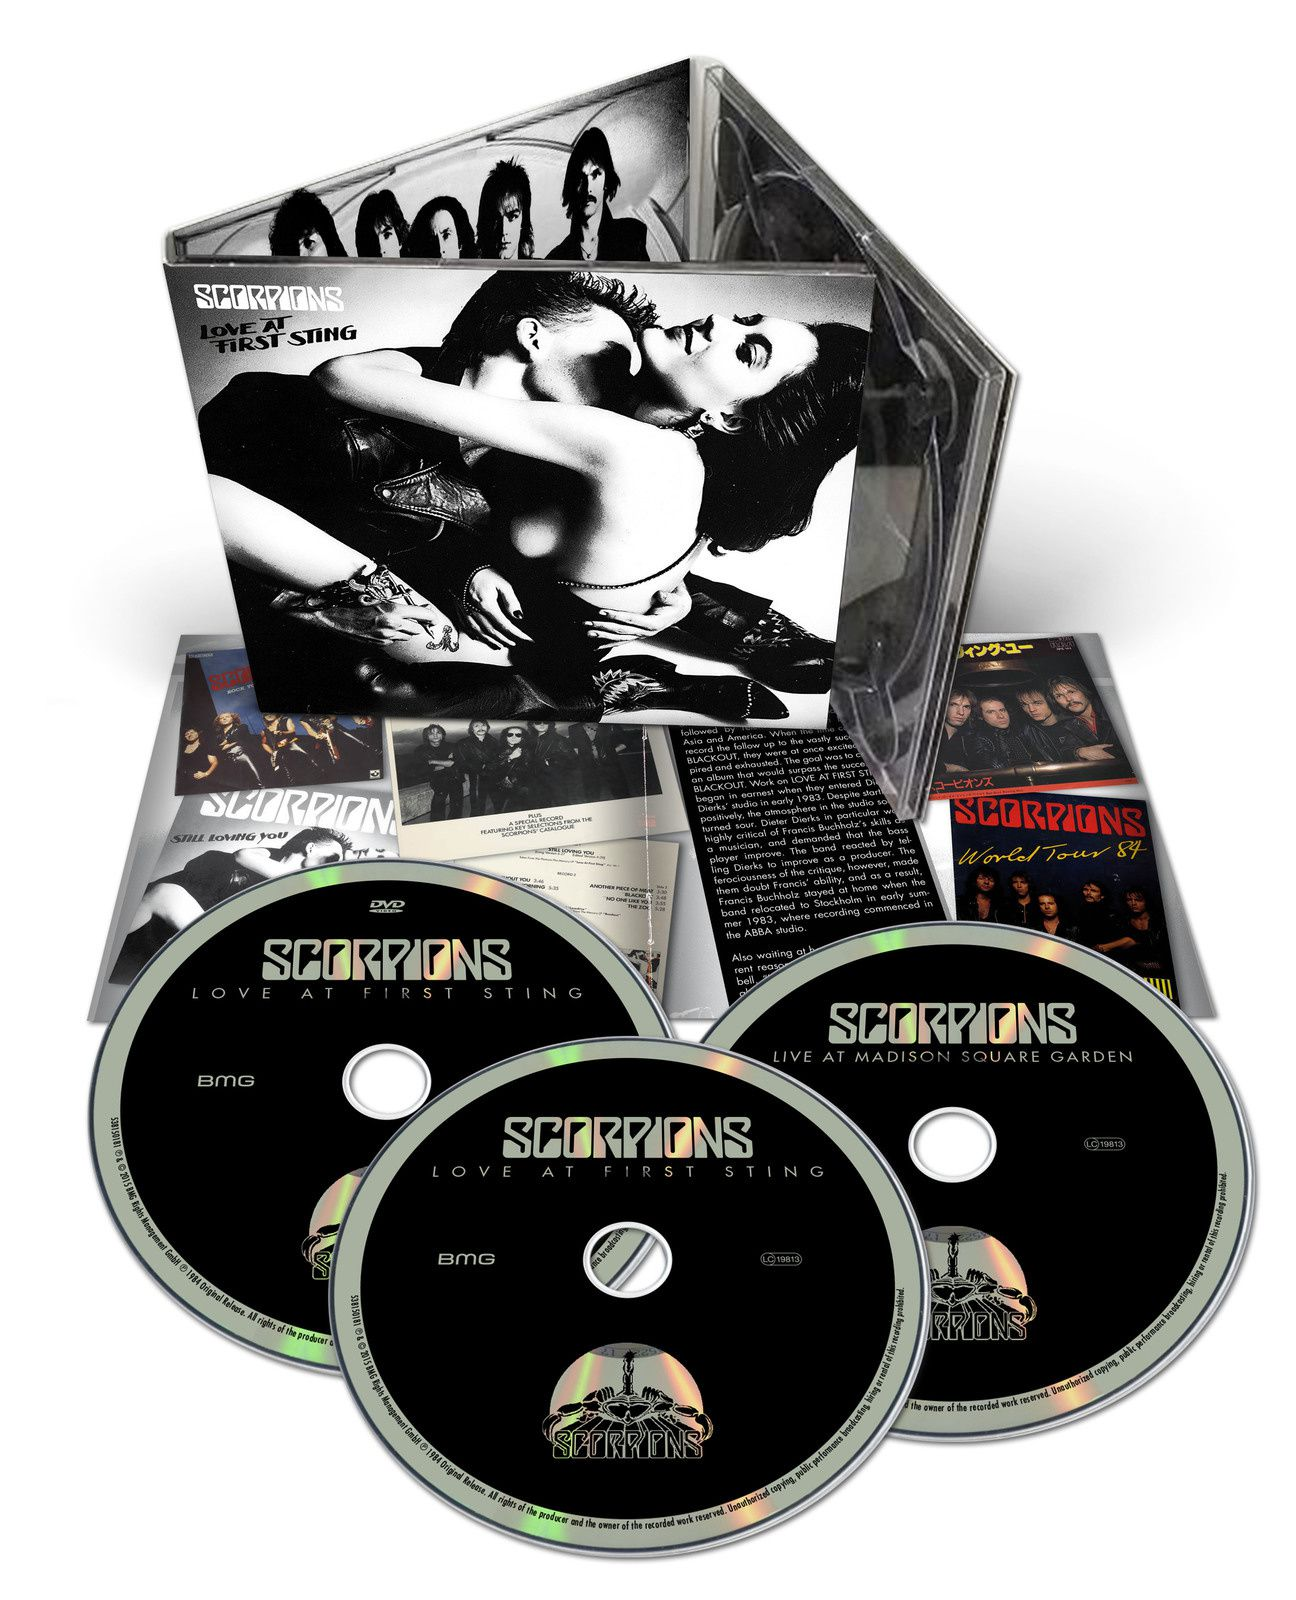 """CD review SCORPIONS """"Love At First Sting"""" 50th Anniversary Deluxe Edition"""